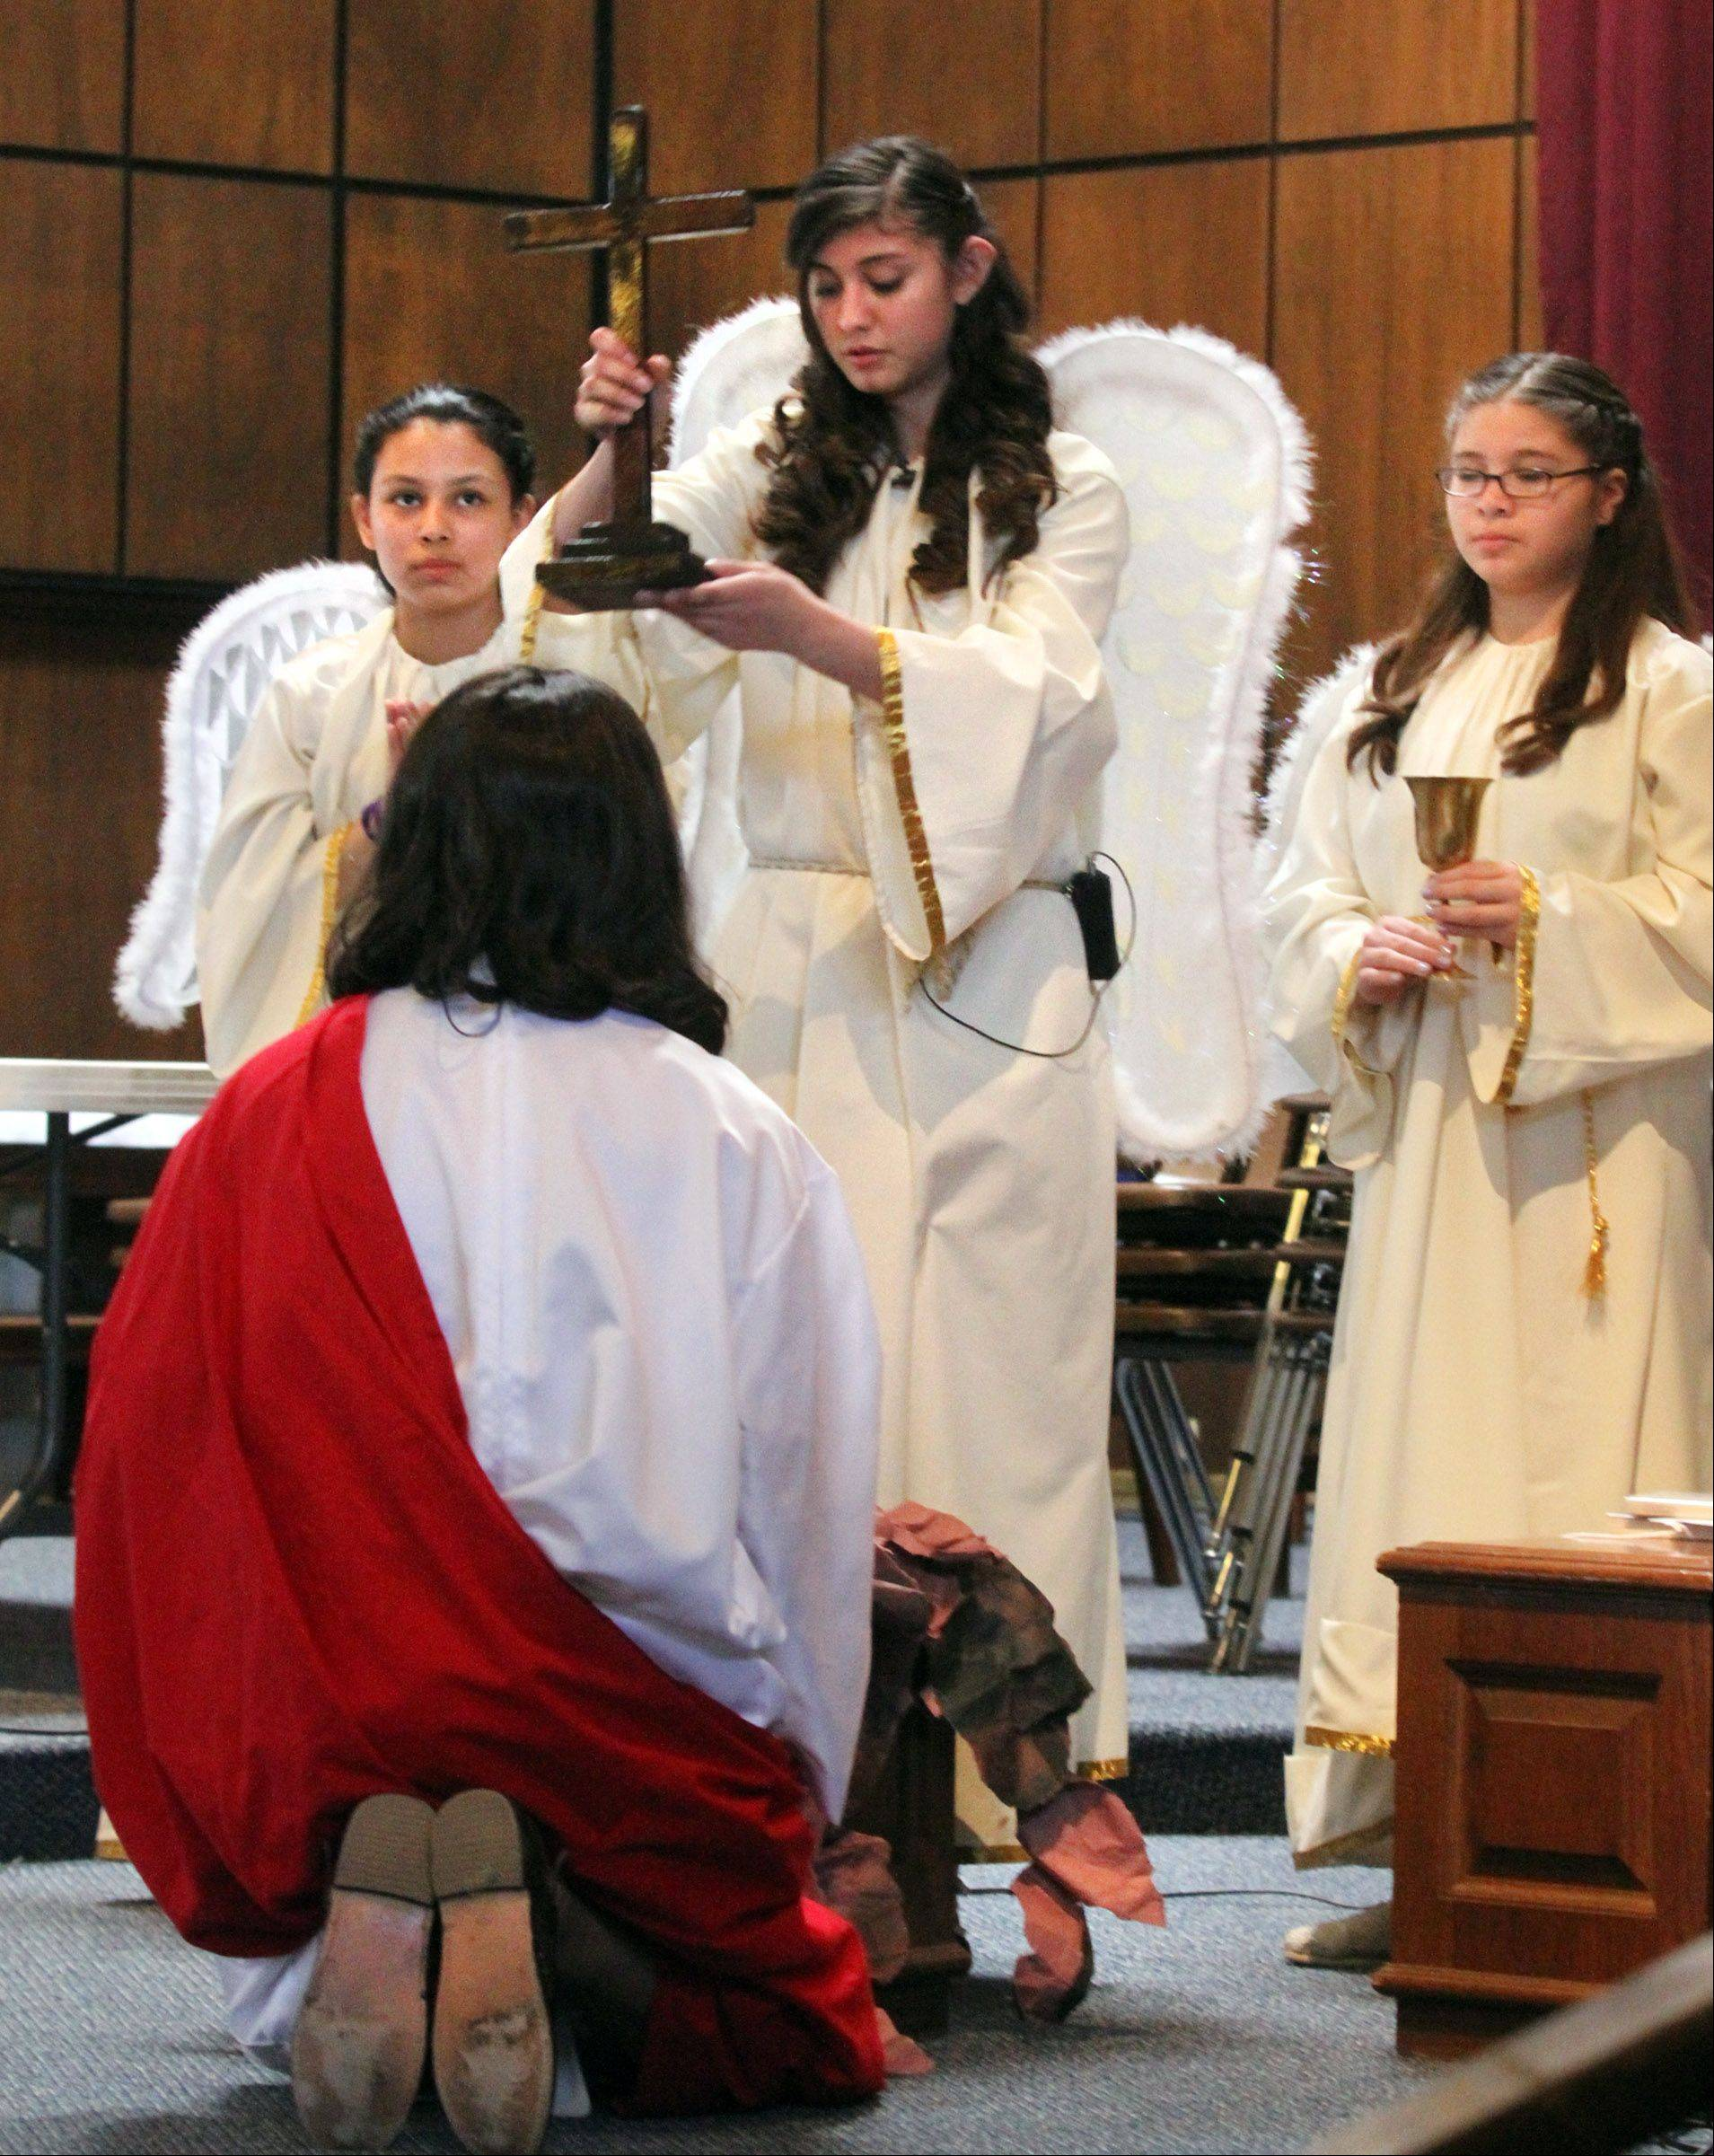 An angel portrayed by Mayela Correa, of Mundelein, speaks to Jesus played by her father, Miguel Angel Correa, during Way of the Cross at Santa Maria del Popolo Catholic Church in Mundelein on Friday.